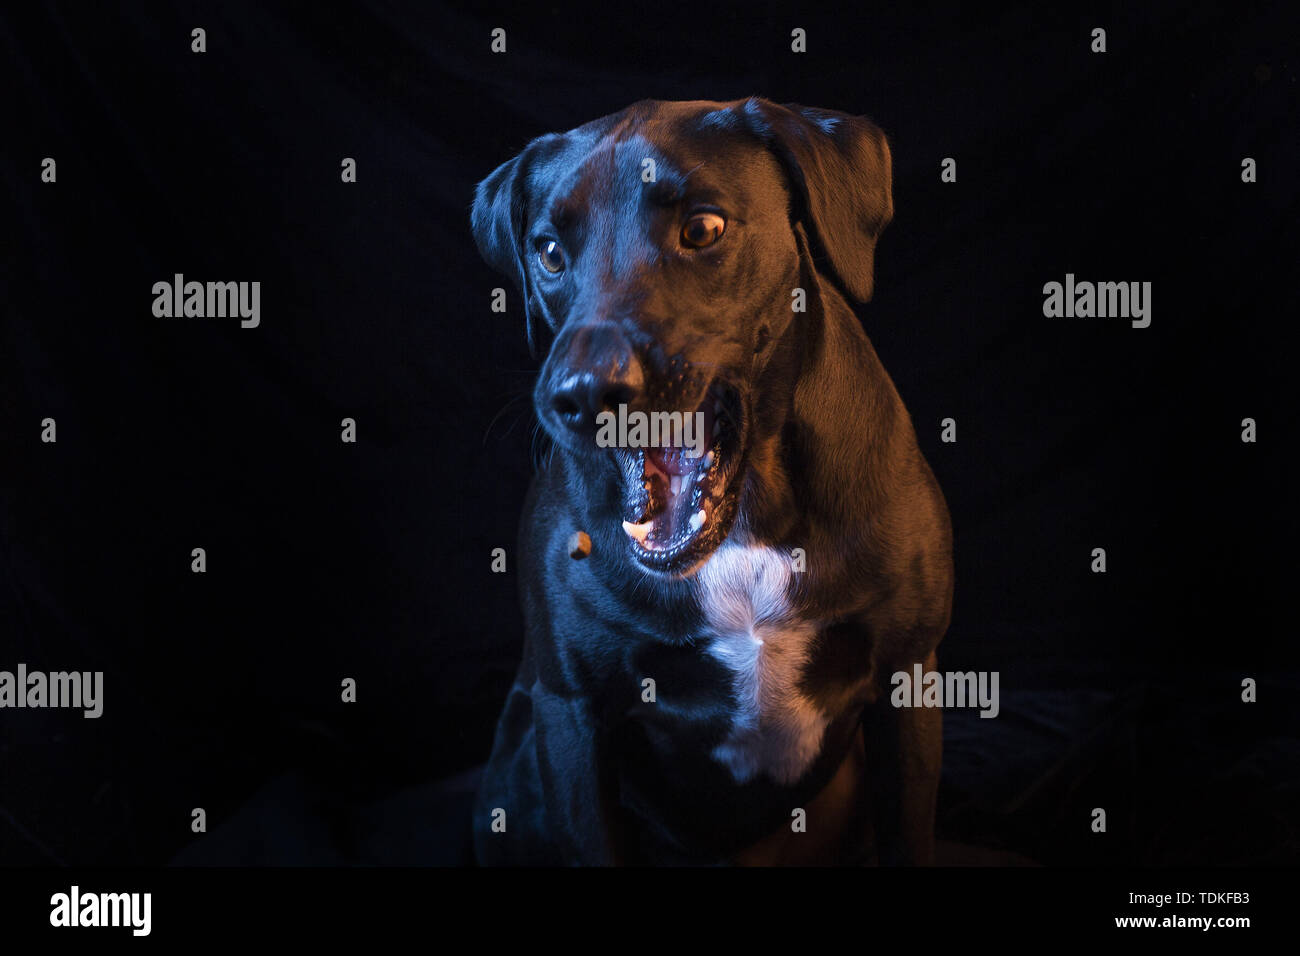 San Diego, California, USA. 16th June, 2019. A mixed labrador retriever and weimaraner rescued dog opens its mouth for a treat. Credit: KC Alfred/ZUMA Wire/Alamy Live News - Stock Image